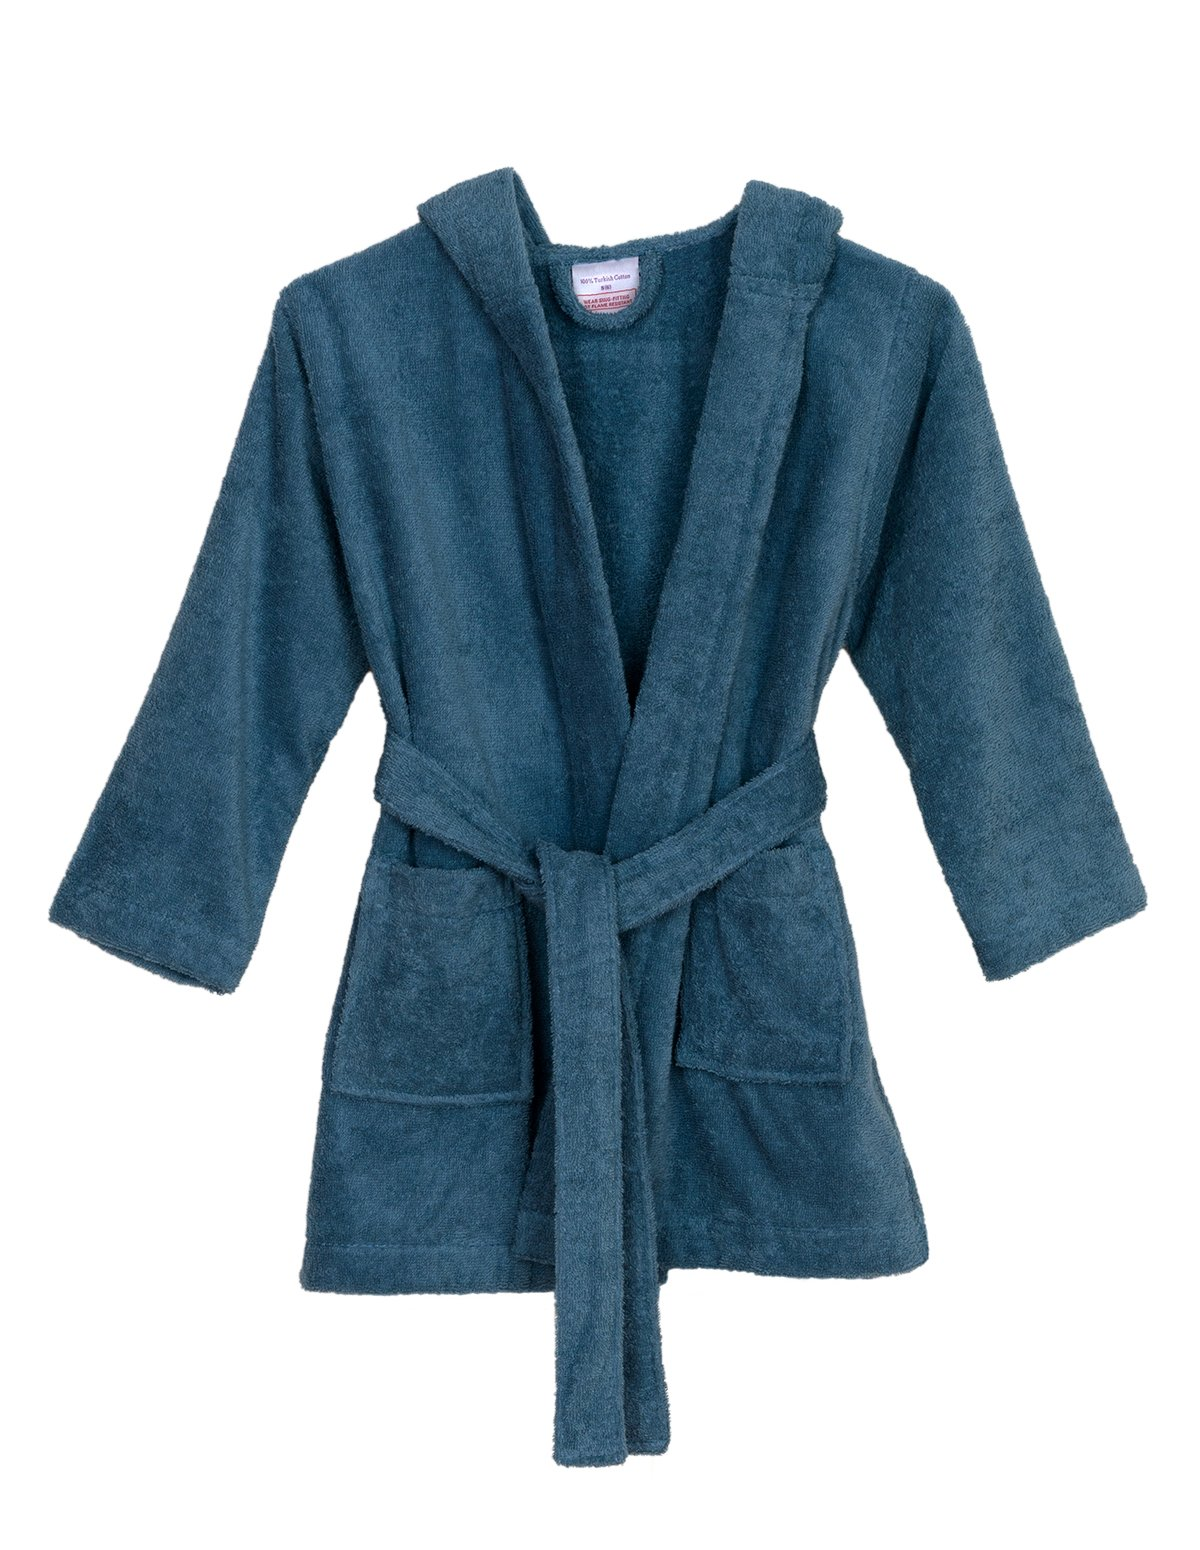 TowelSelections Big Boys' Robe, Kids Hooded Cotton Terry Bathrobe Cover-up Size 12 Blue Heaven